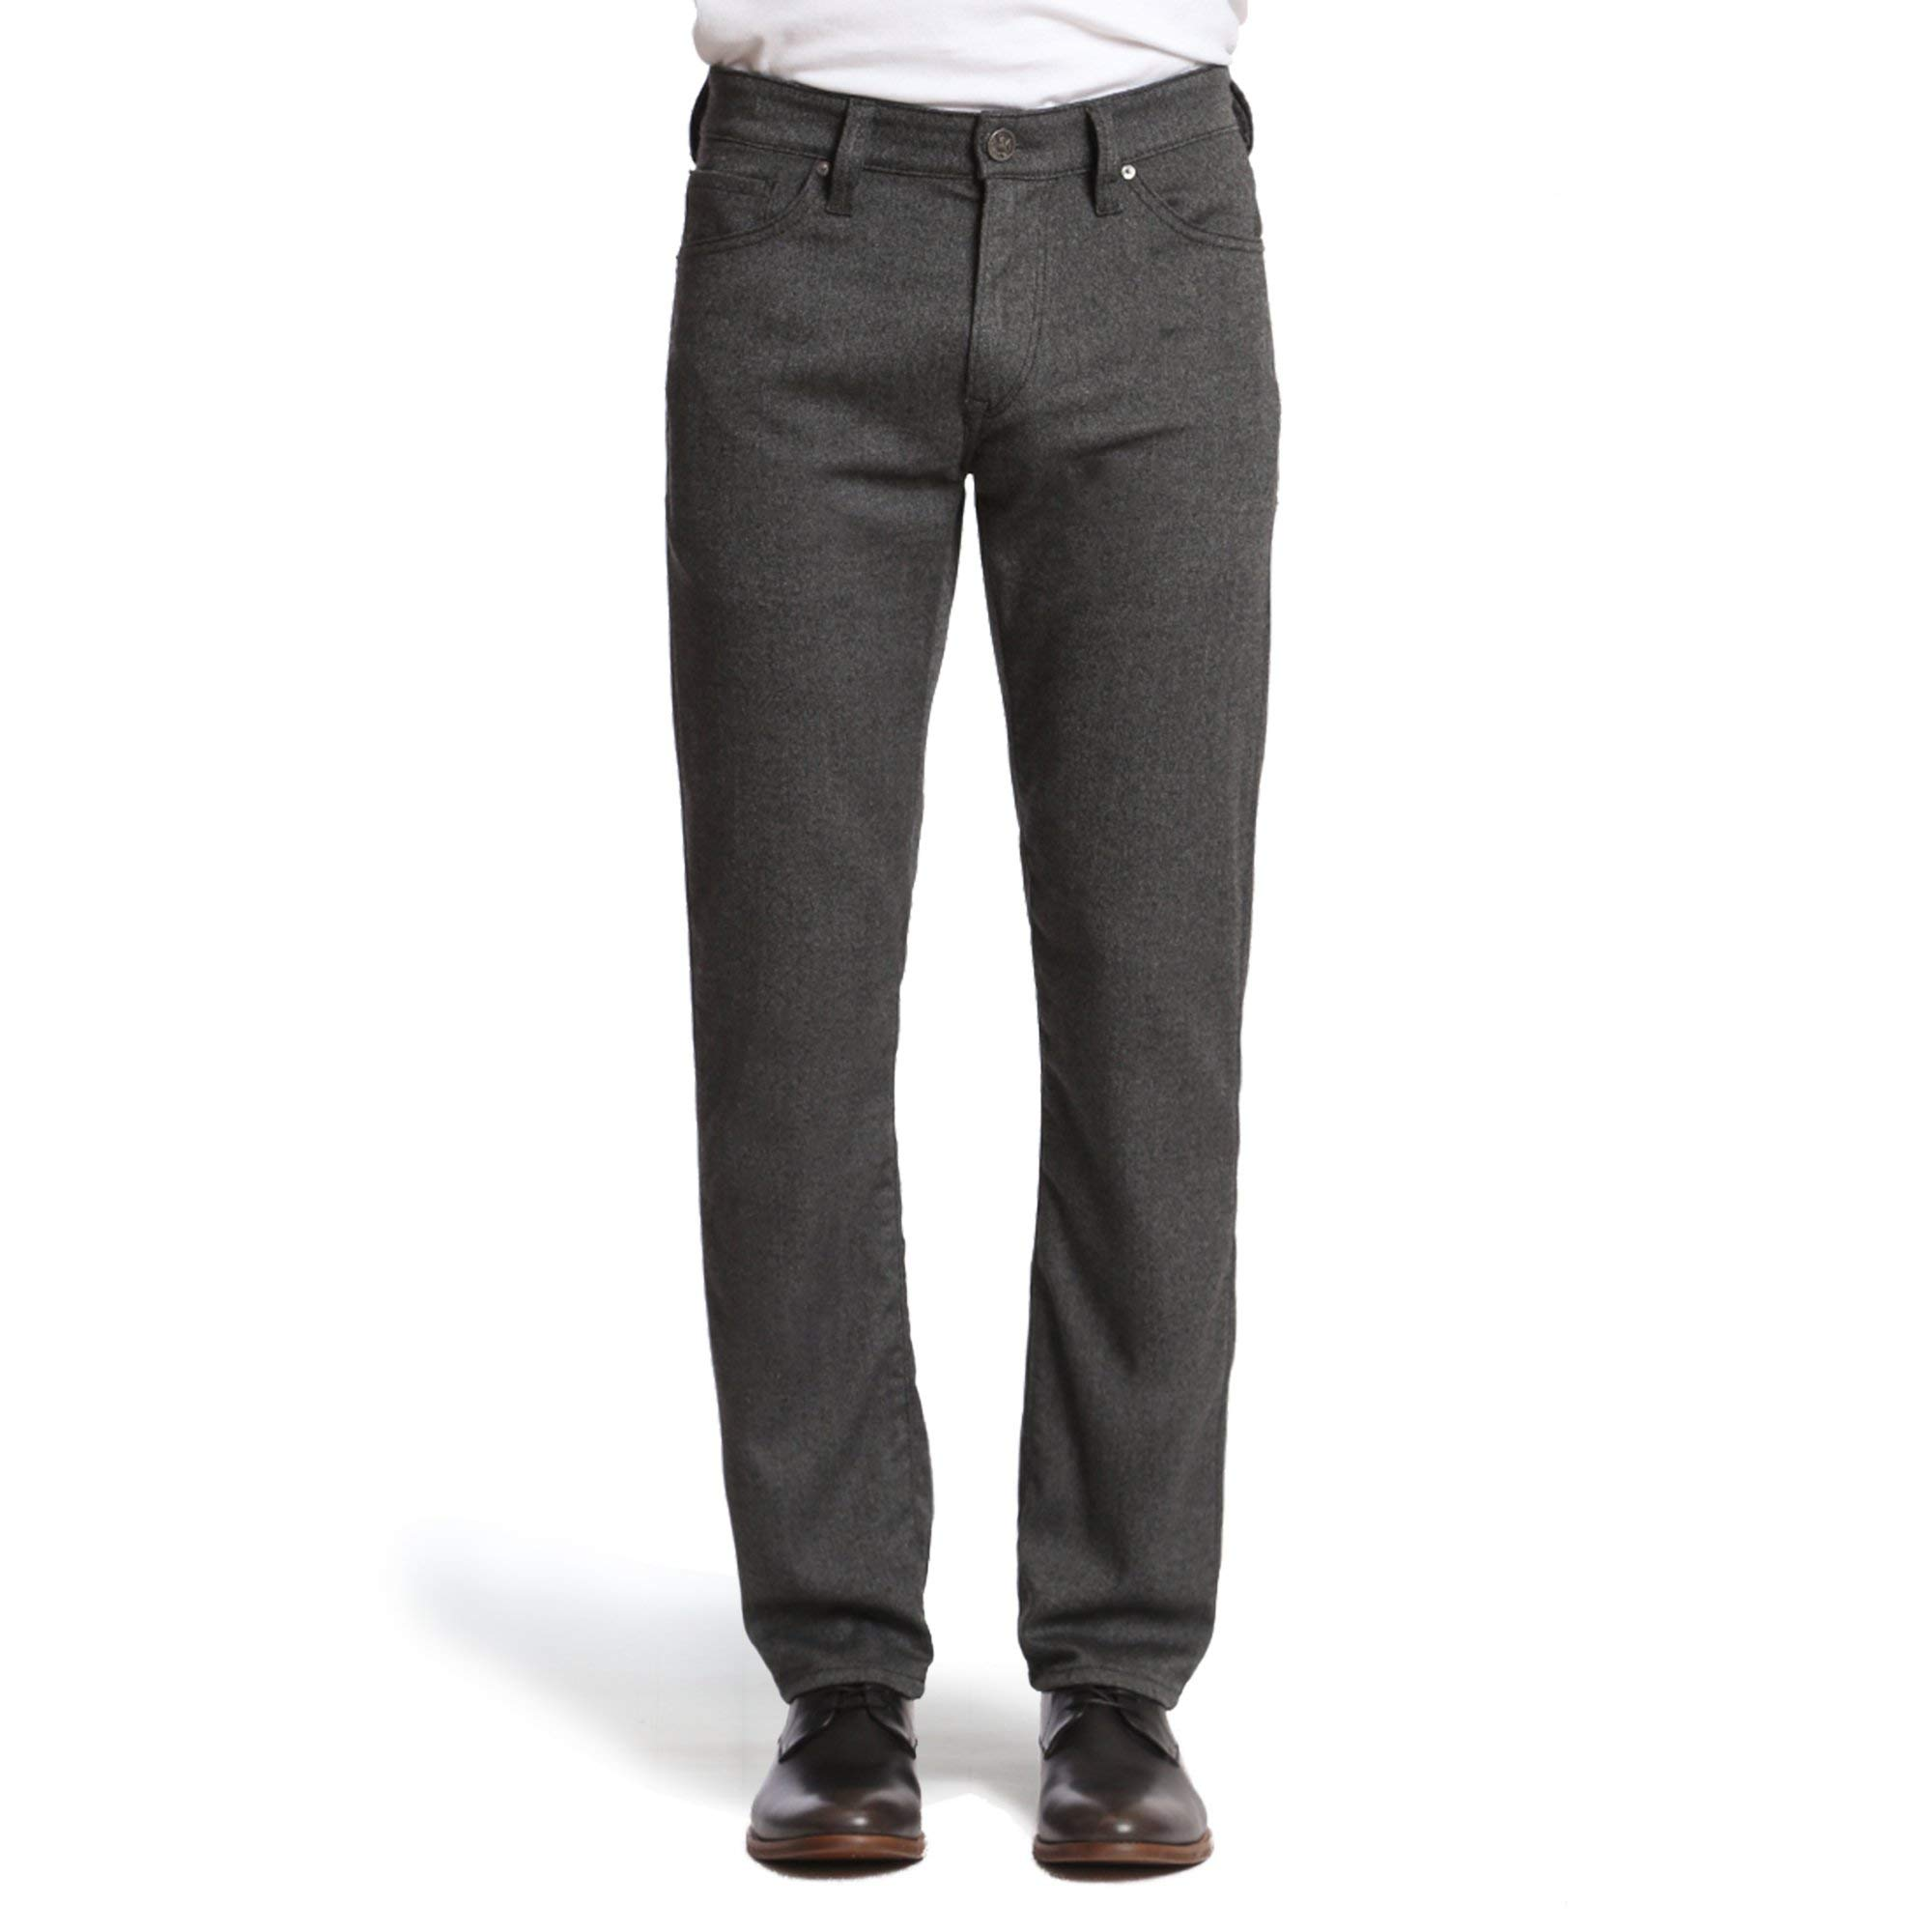 34 Heritage Men's Charisma Relaxed Classic Pants, Grey Feather Tweed 34 x 34